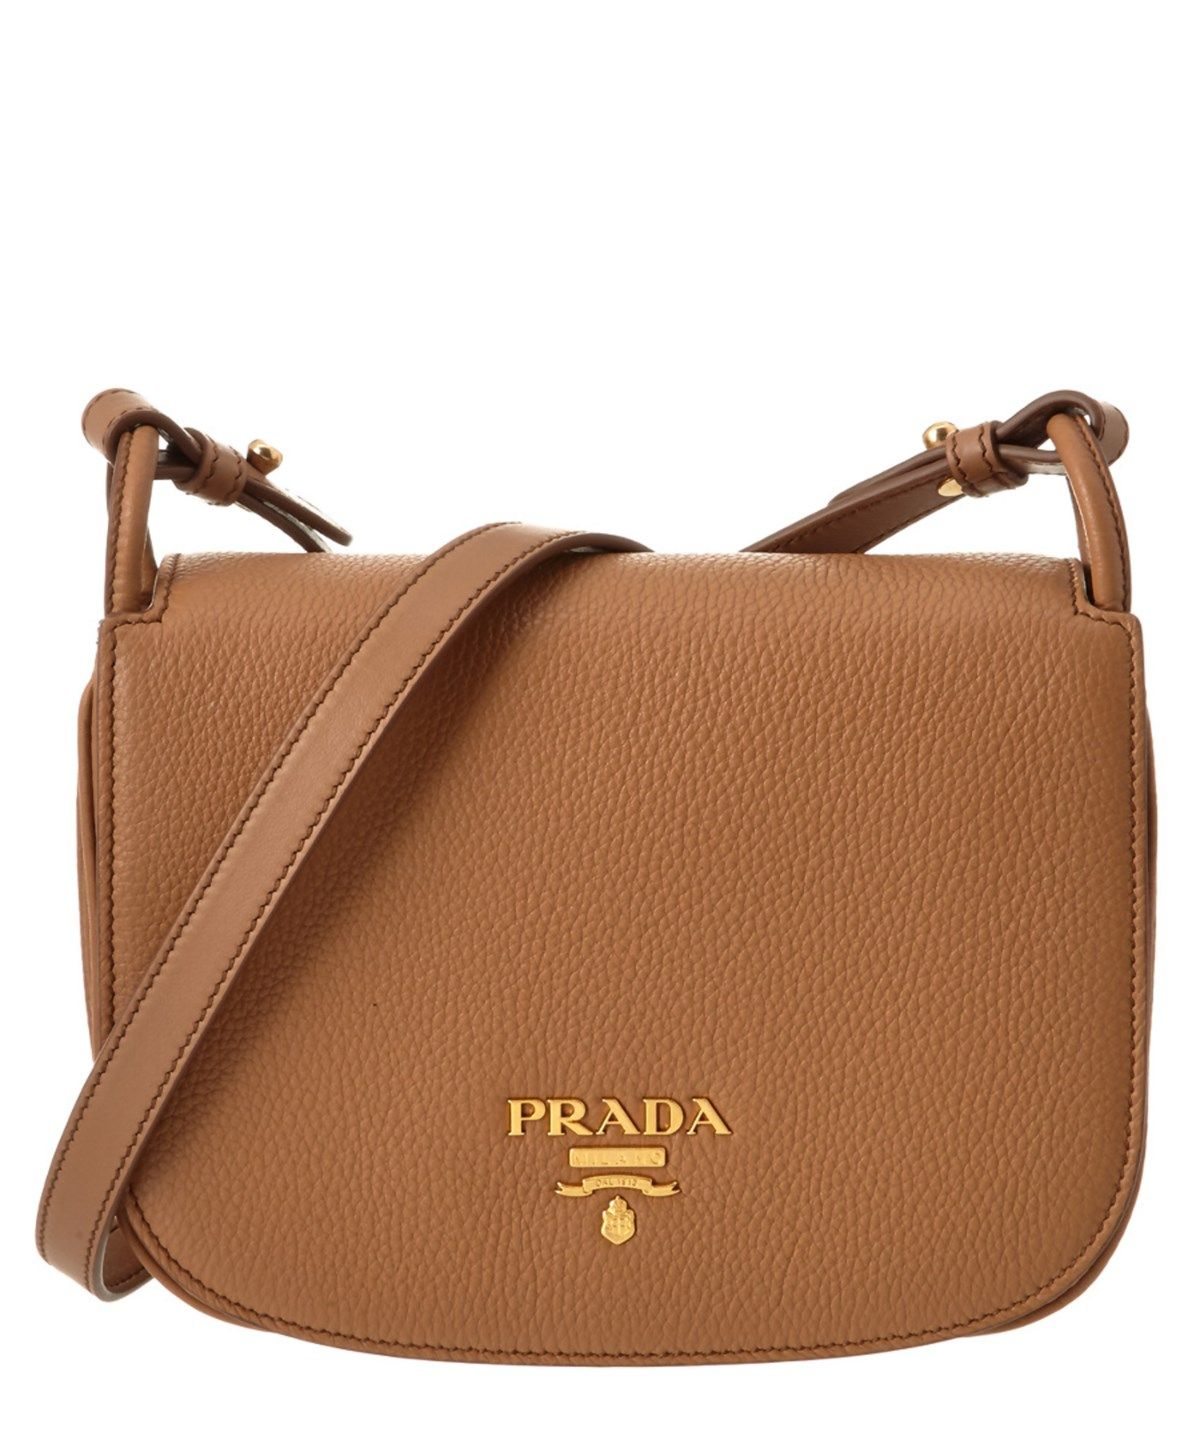 7eebe98bdae999 PRADA PRADA PEBBLED LEATHER SADDLE BAG'. #prada #bags #shoulder bags # leather #lining #